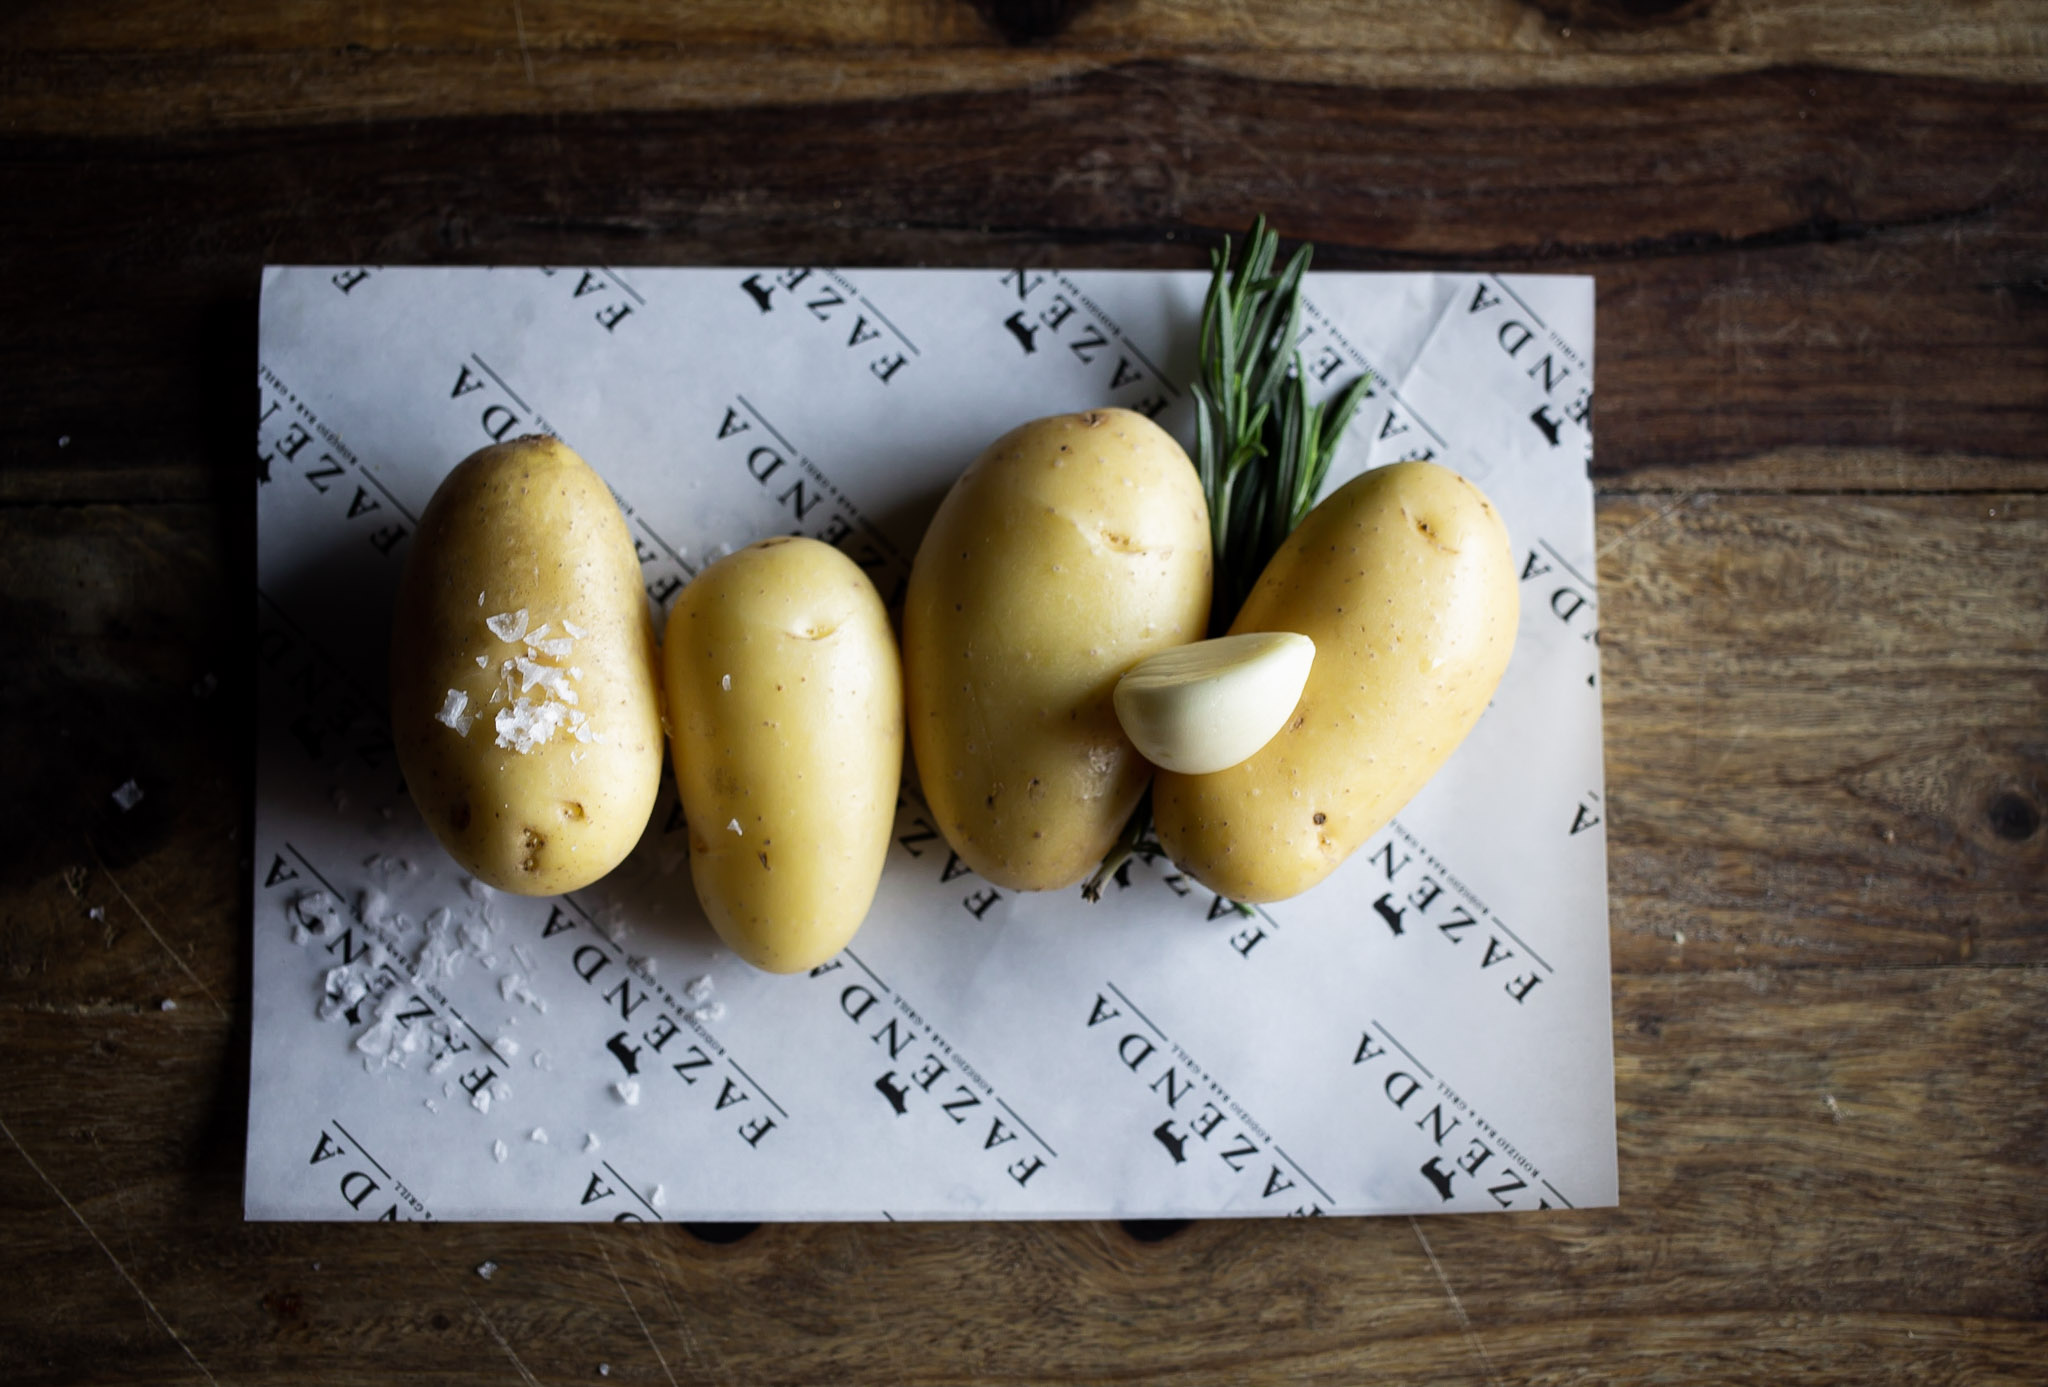 Potatoes are a perfect wintry addition to any meal